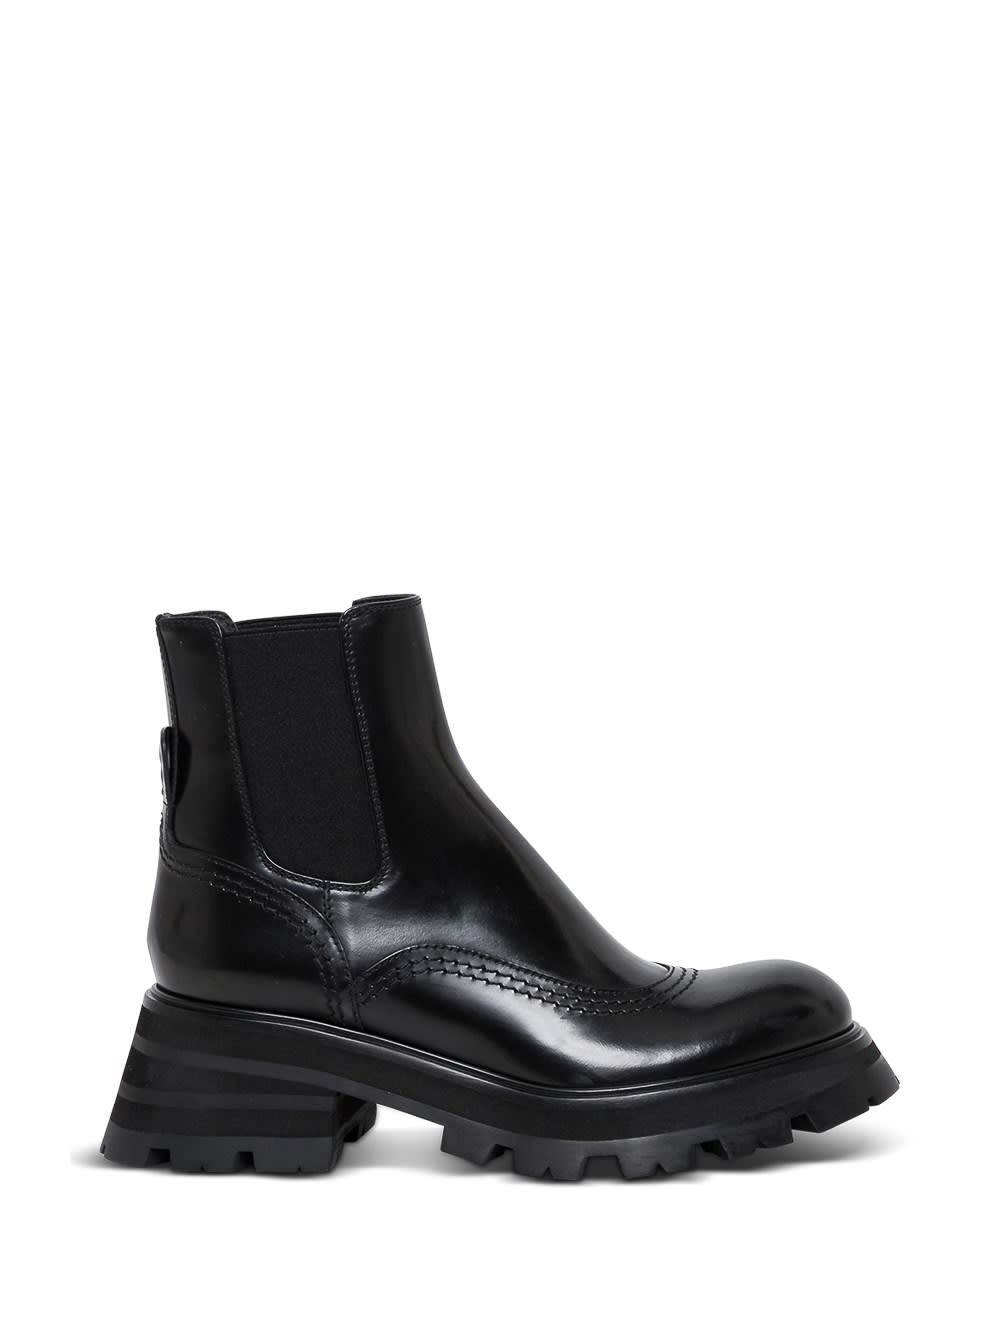 Buy Alexander McQueen Black Leather Ankle Boots online, shop Alexander McQueen shoes with free shipping